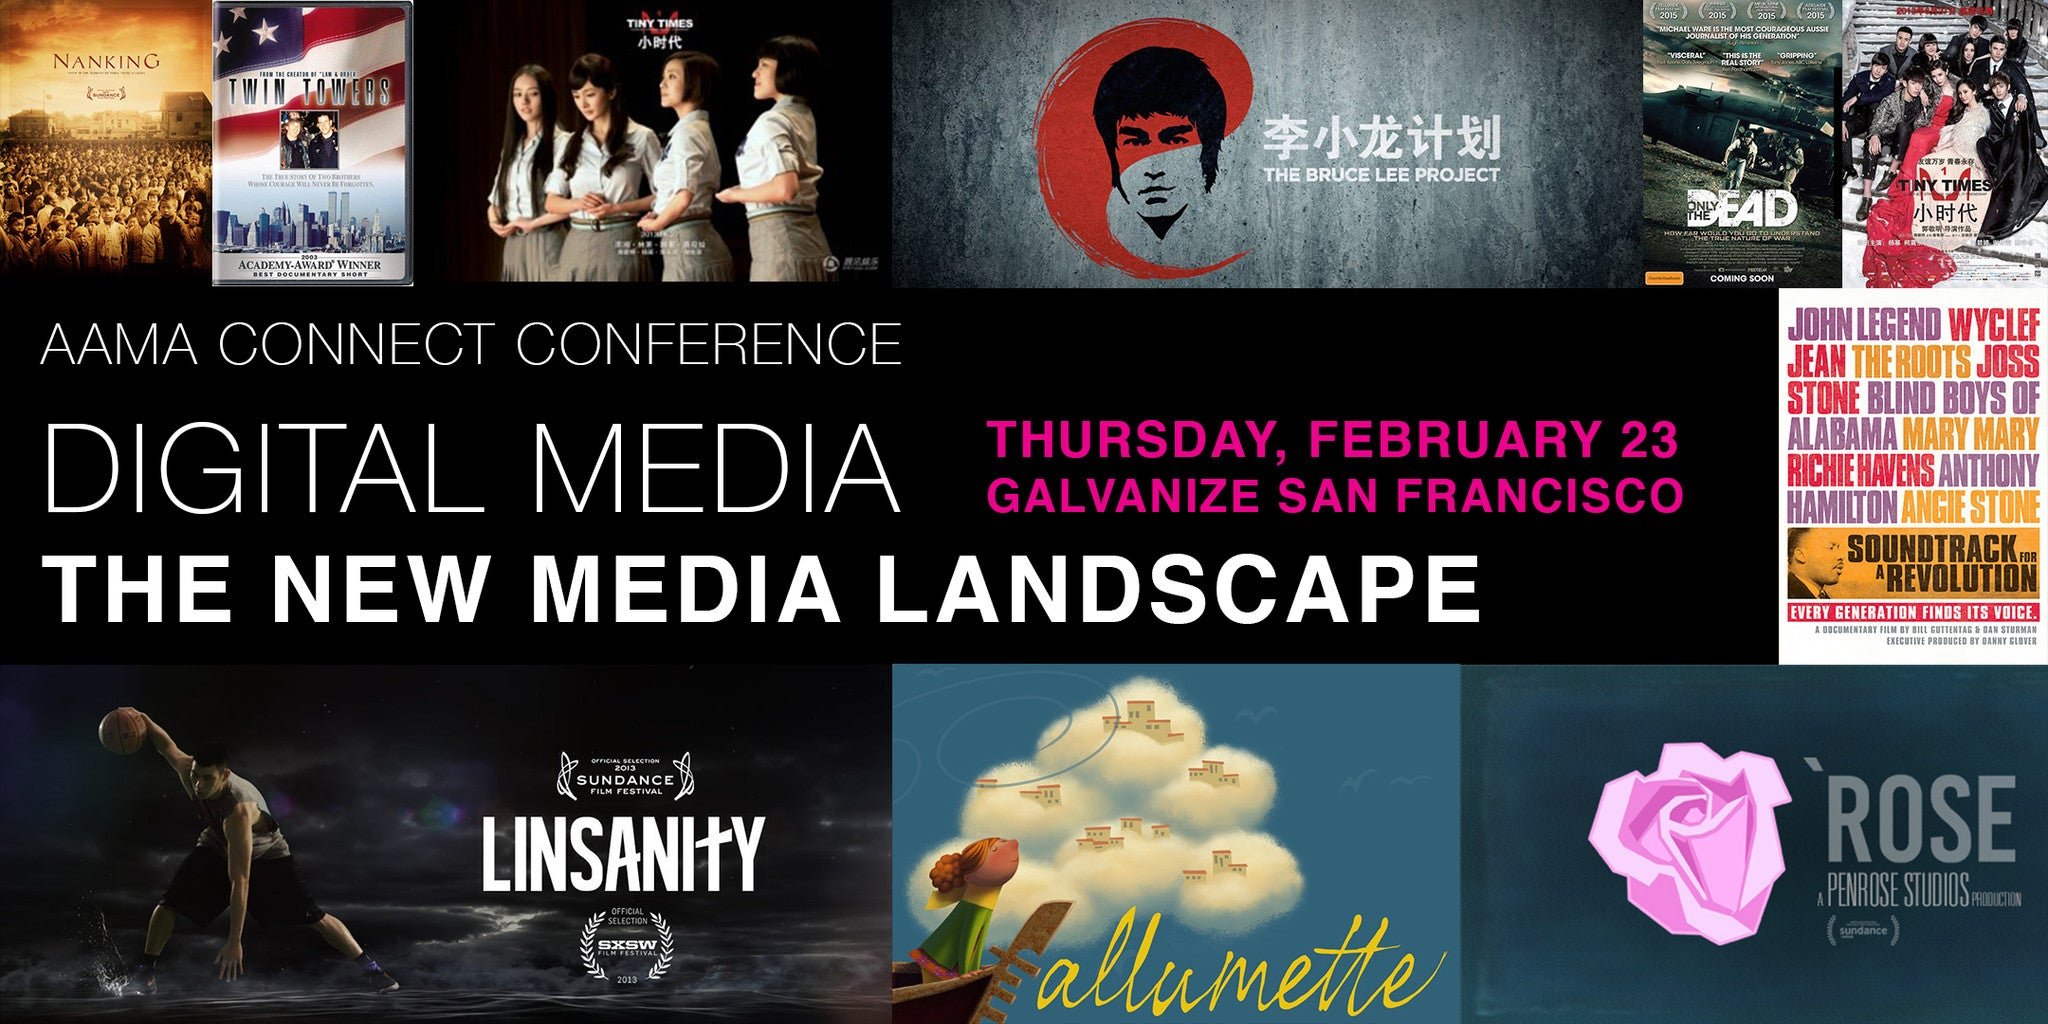 AAMA Connect Conference: Digital Media - The New Media Landscape